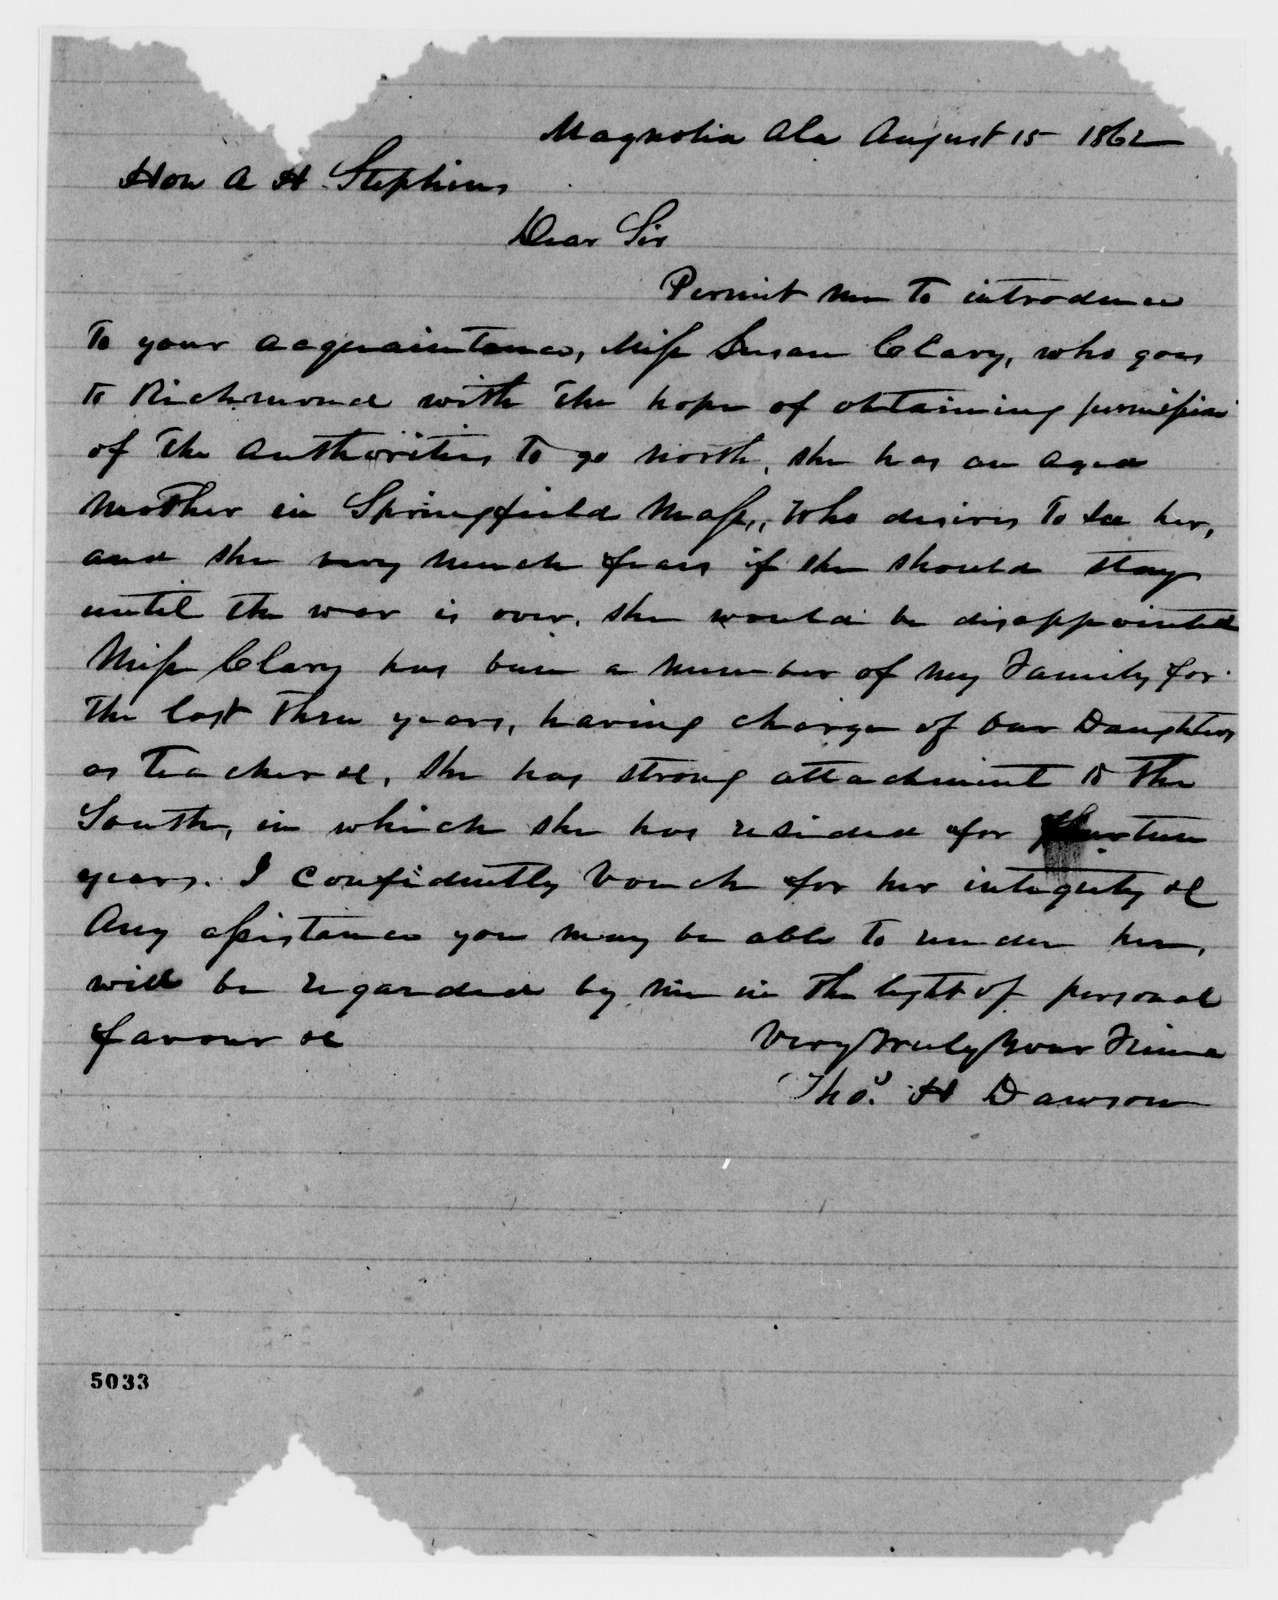 Alexander Hamilton Stephens Papers: General Correspondence, 1784-1886; 1862, June 19-Sept. 8